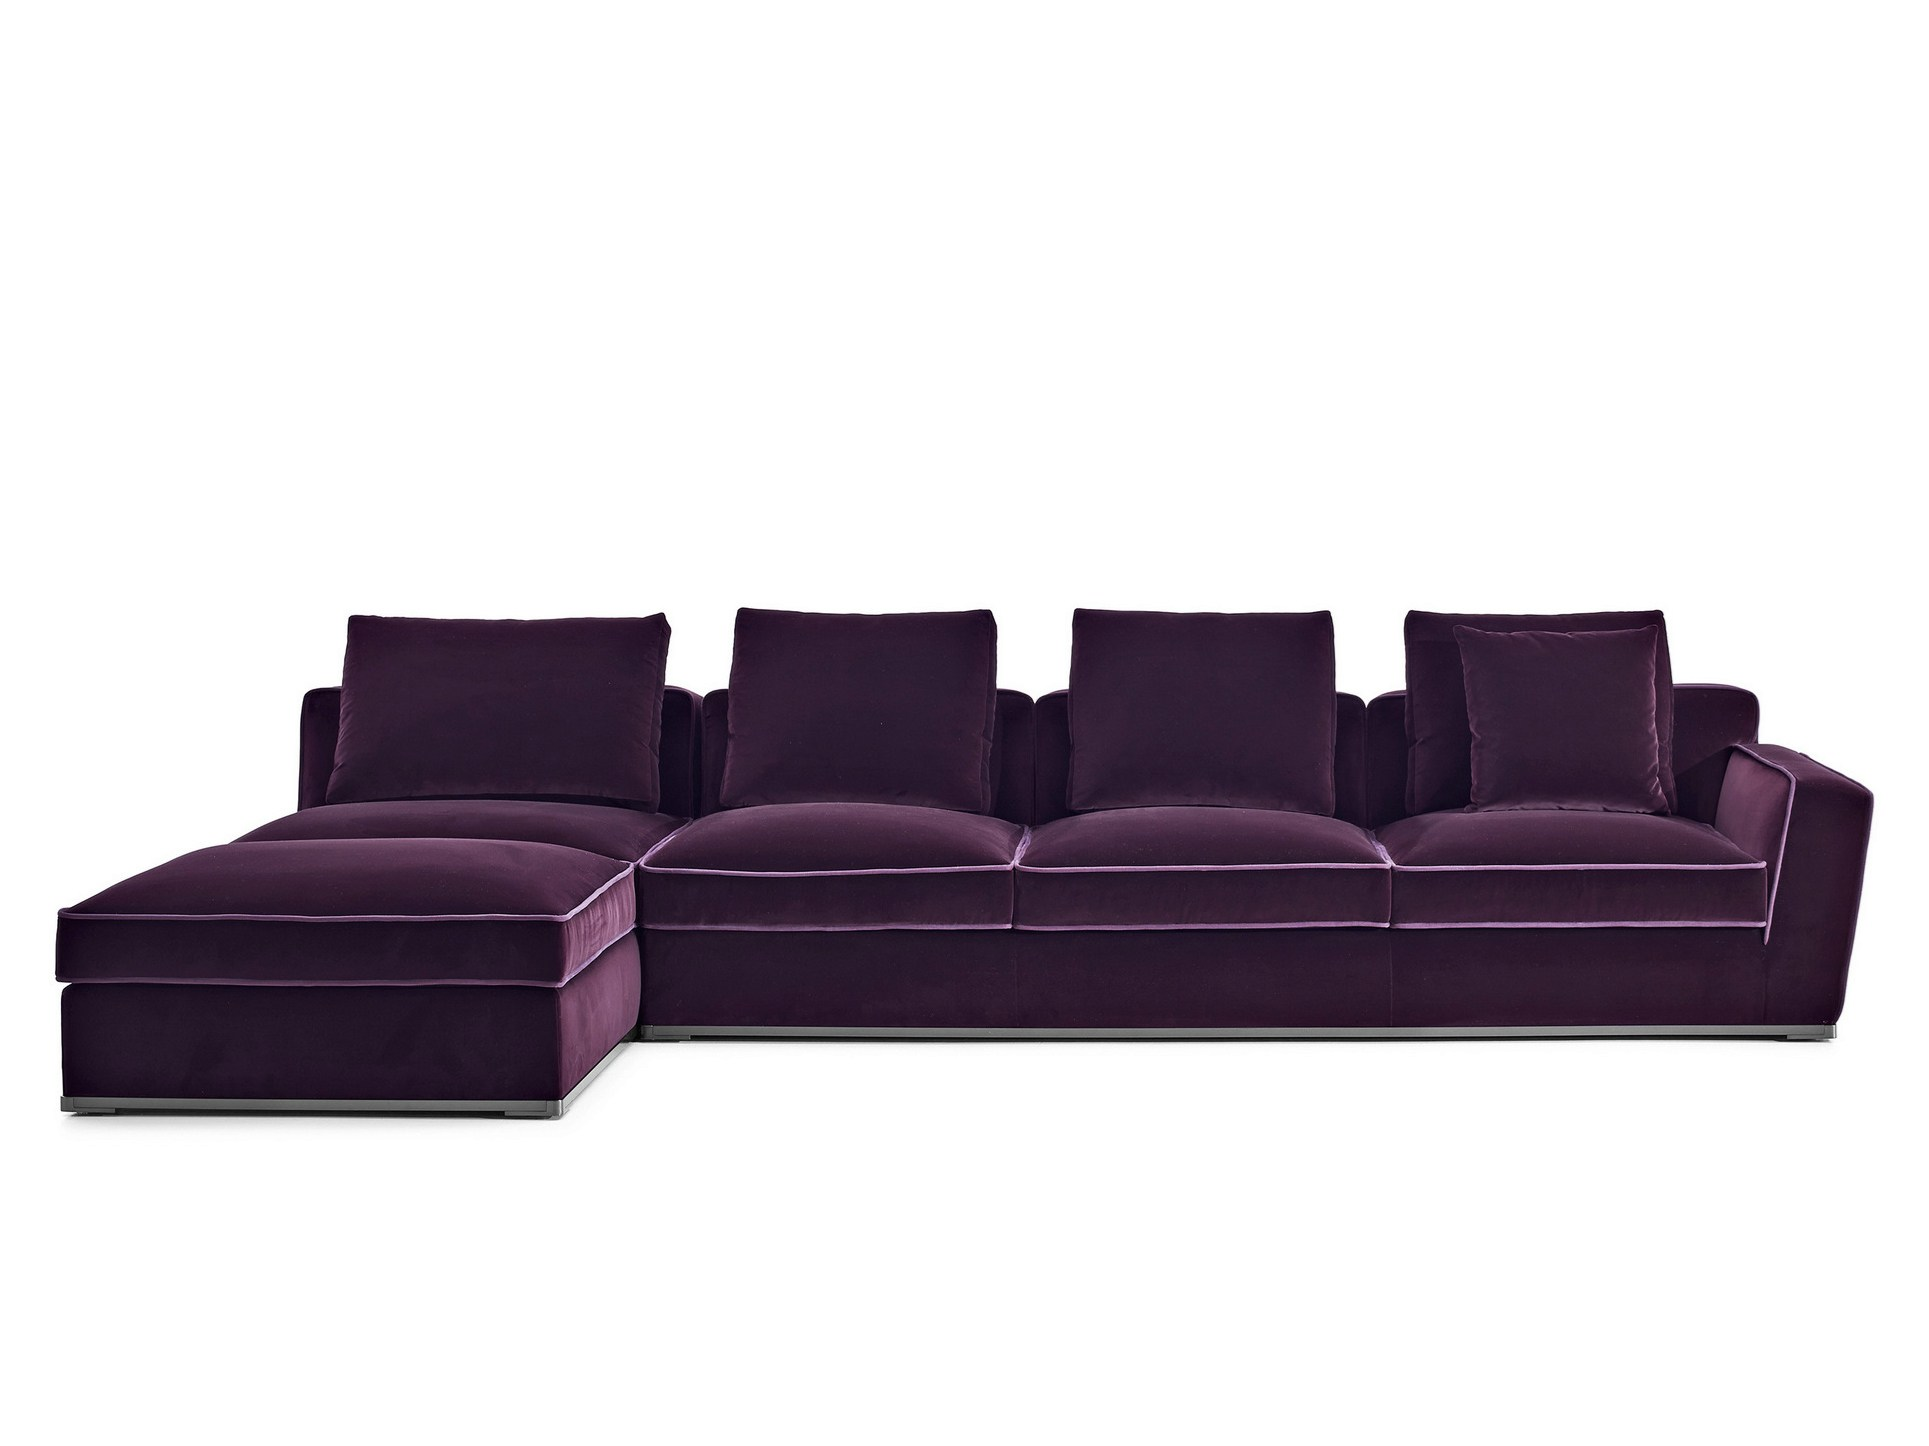 solatium sofa with chaise longue solatium collection by. Black Bedroom Furniture Sets. Home Design Ideas